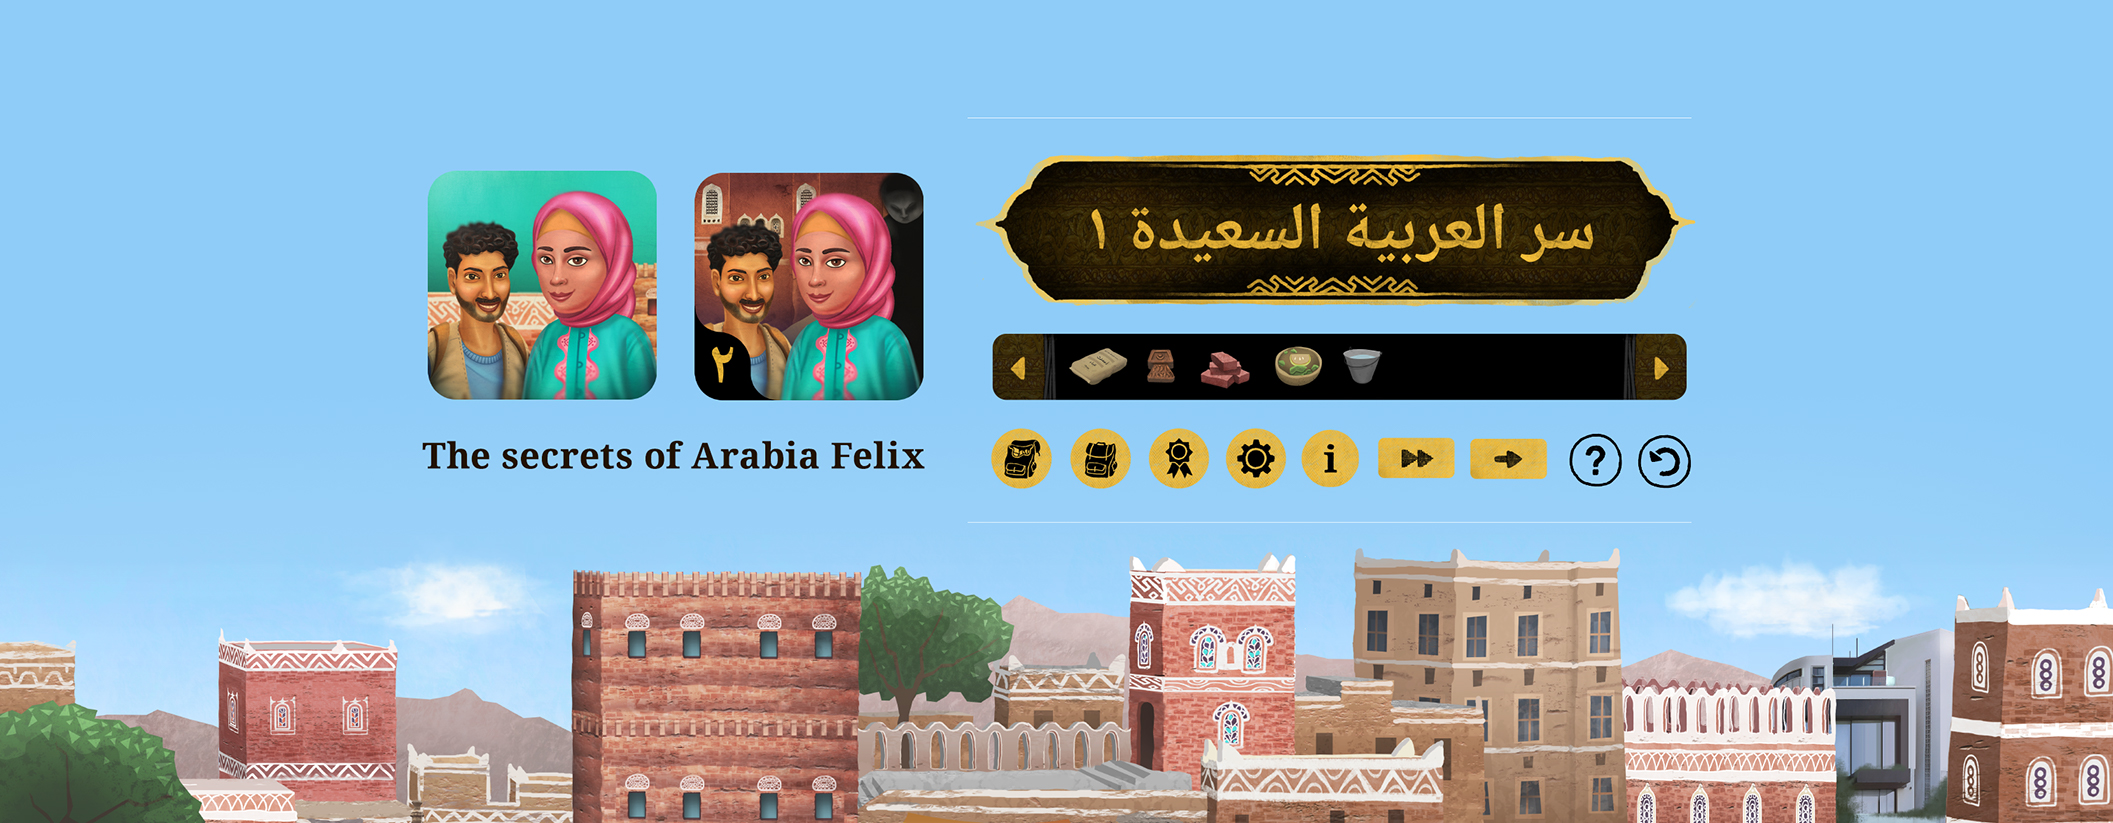 A compilation of the UI of The Secrets of Arabia Felix